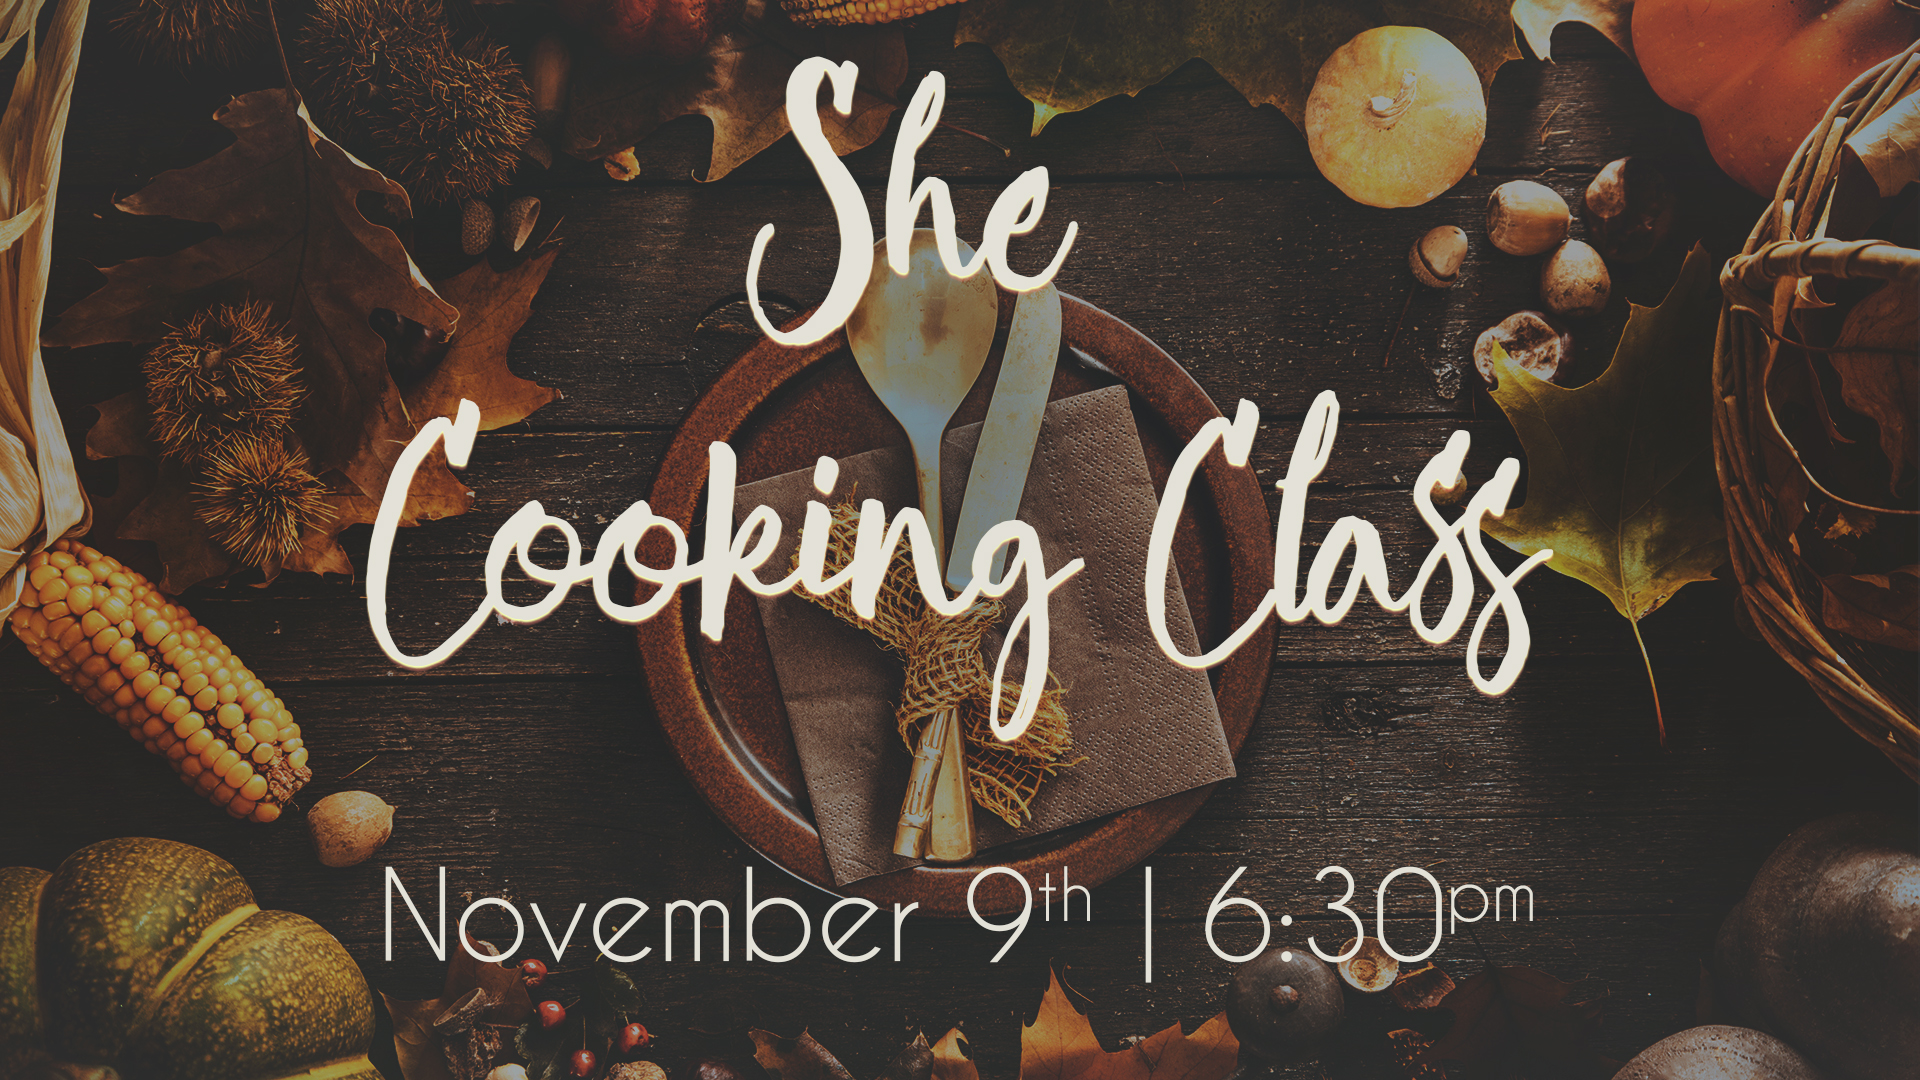 Ladies! Join us on Thursday, November 9th at 6:30PM in the Coffee Shop for a She Cooking Class, Thanksgiving style! Learn how to make all the classic Thanksgiving dishes and leave with recipes to use that night! And of course, there will be plenty of delicious samples to try out that night as well. Hope to see you there!